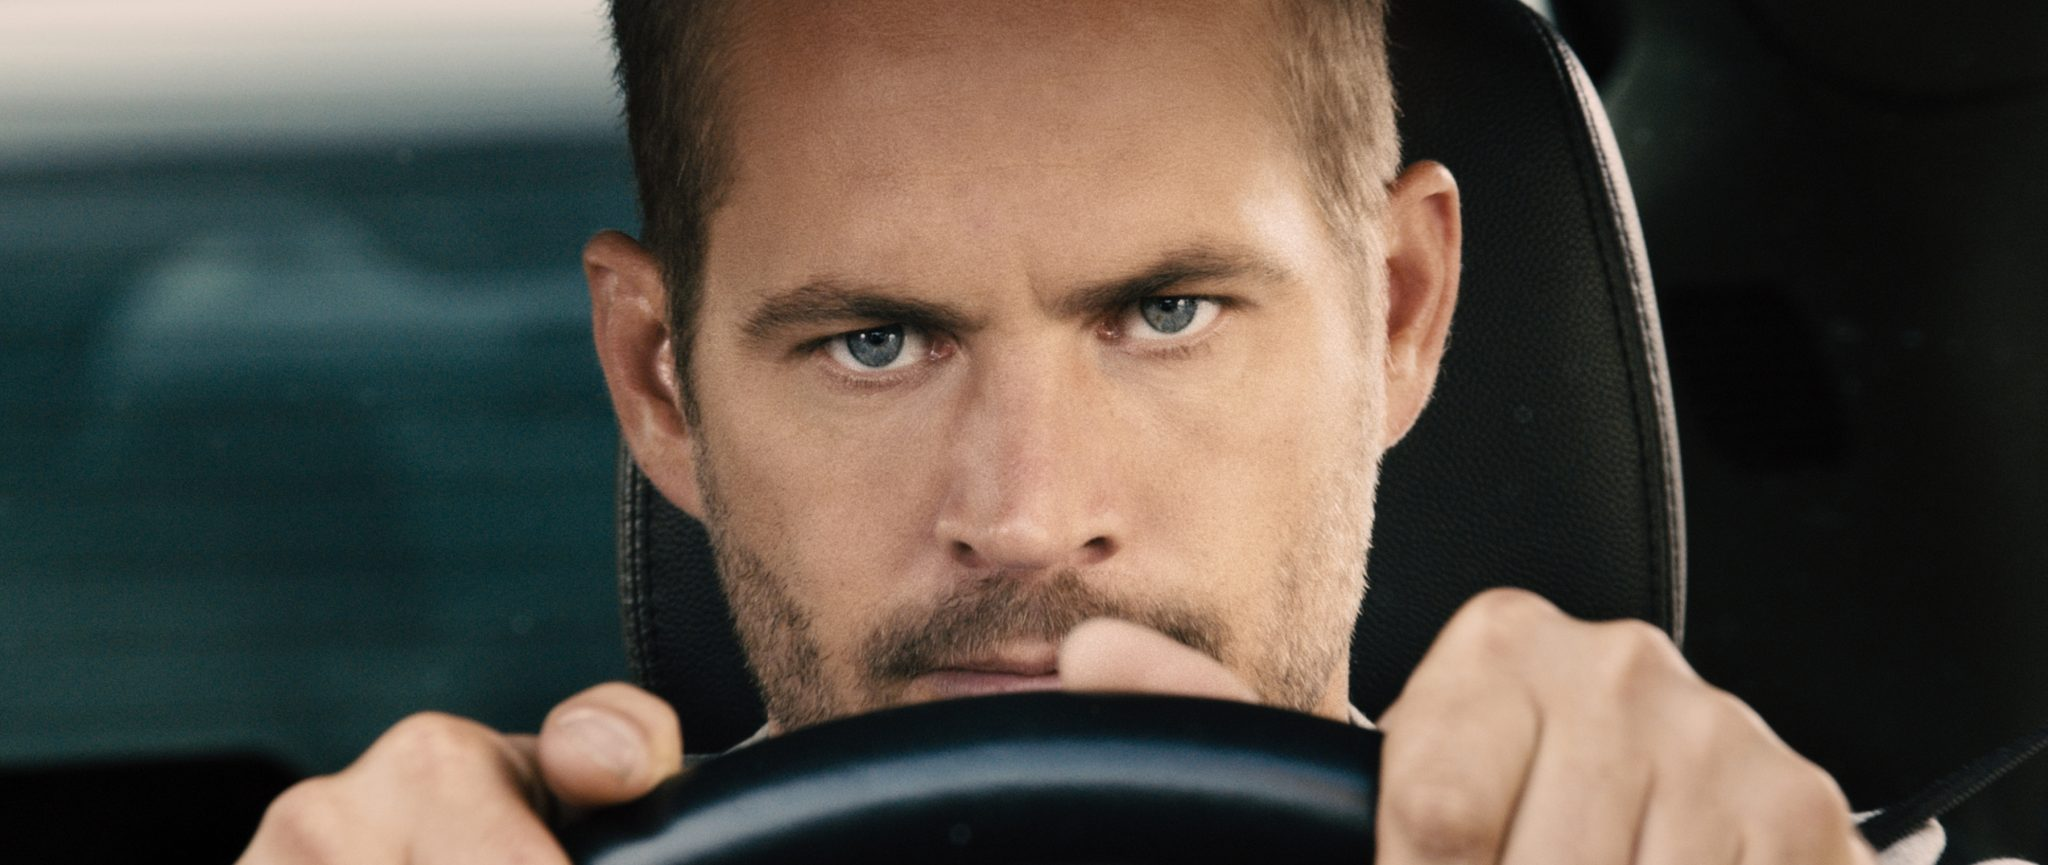 Fast And Furious 7 Paul Walker Quotes Quotesgram: Fast 8 Actor Writes Tribute To Paul Walker